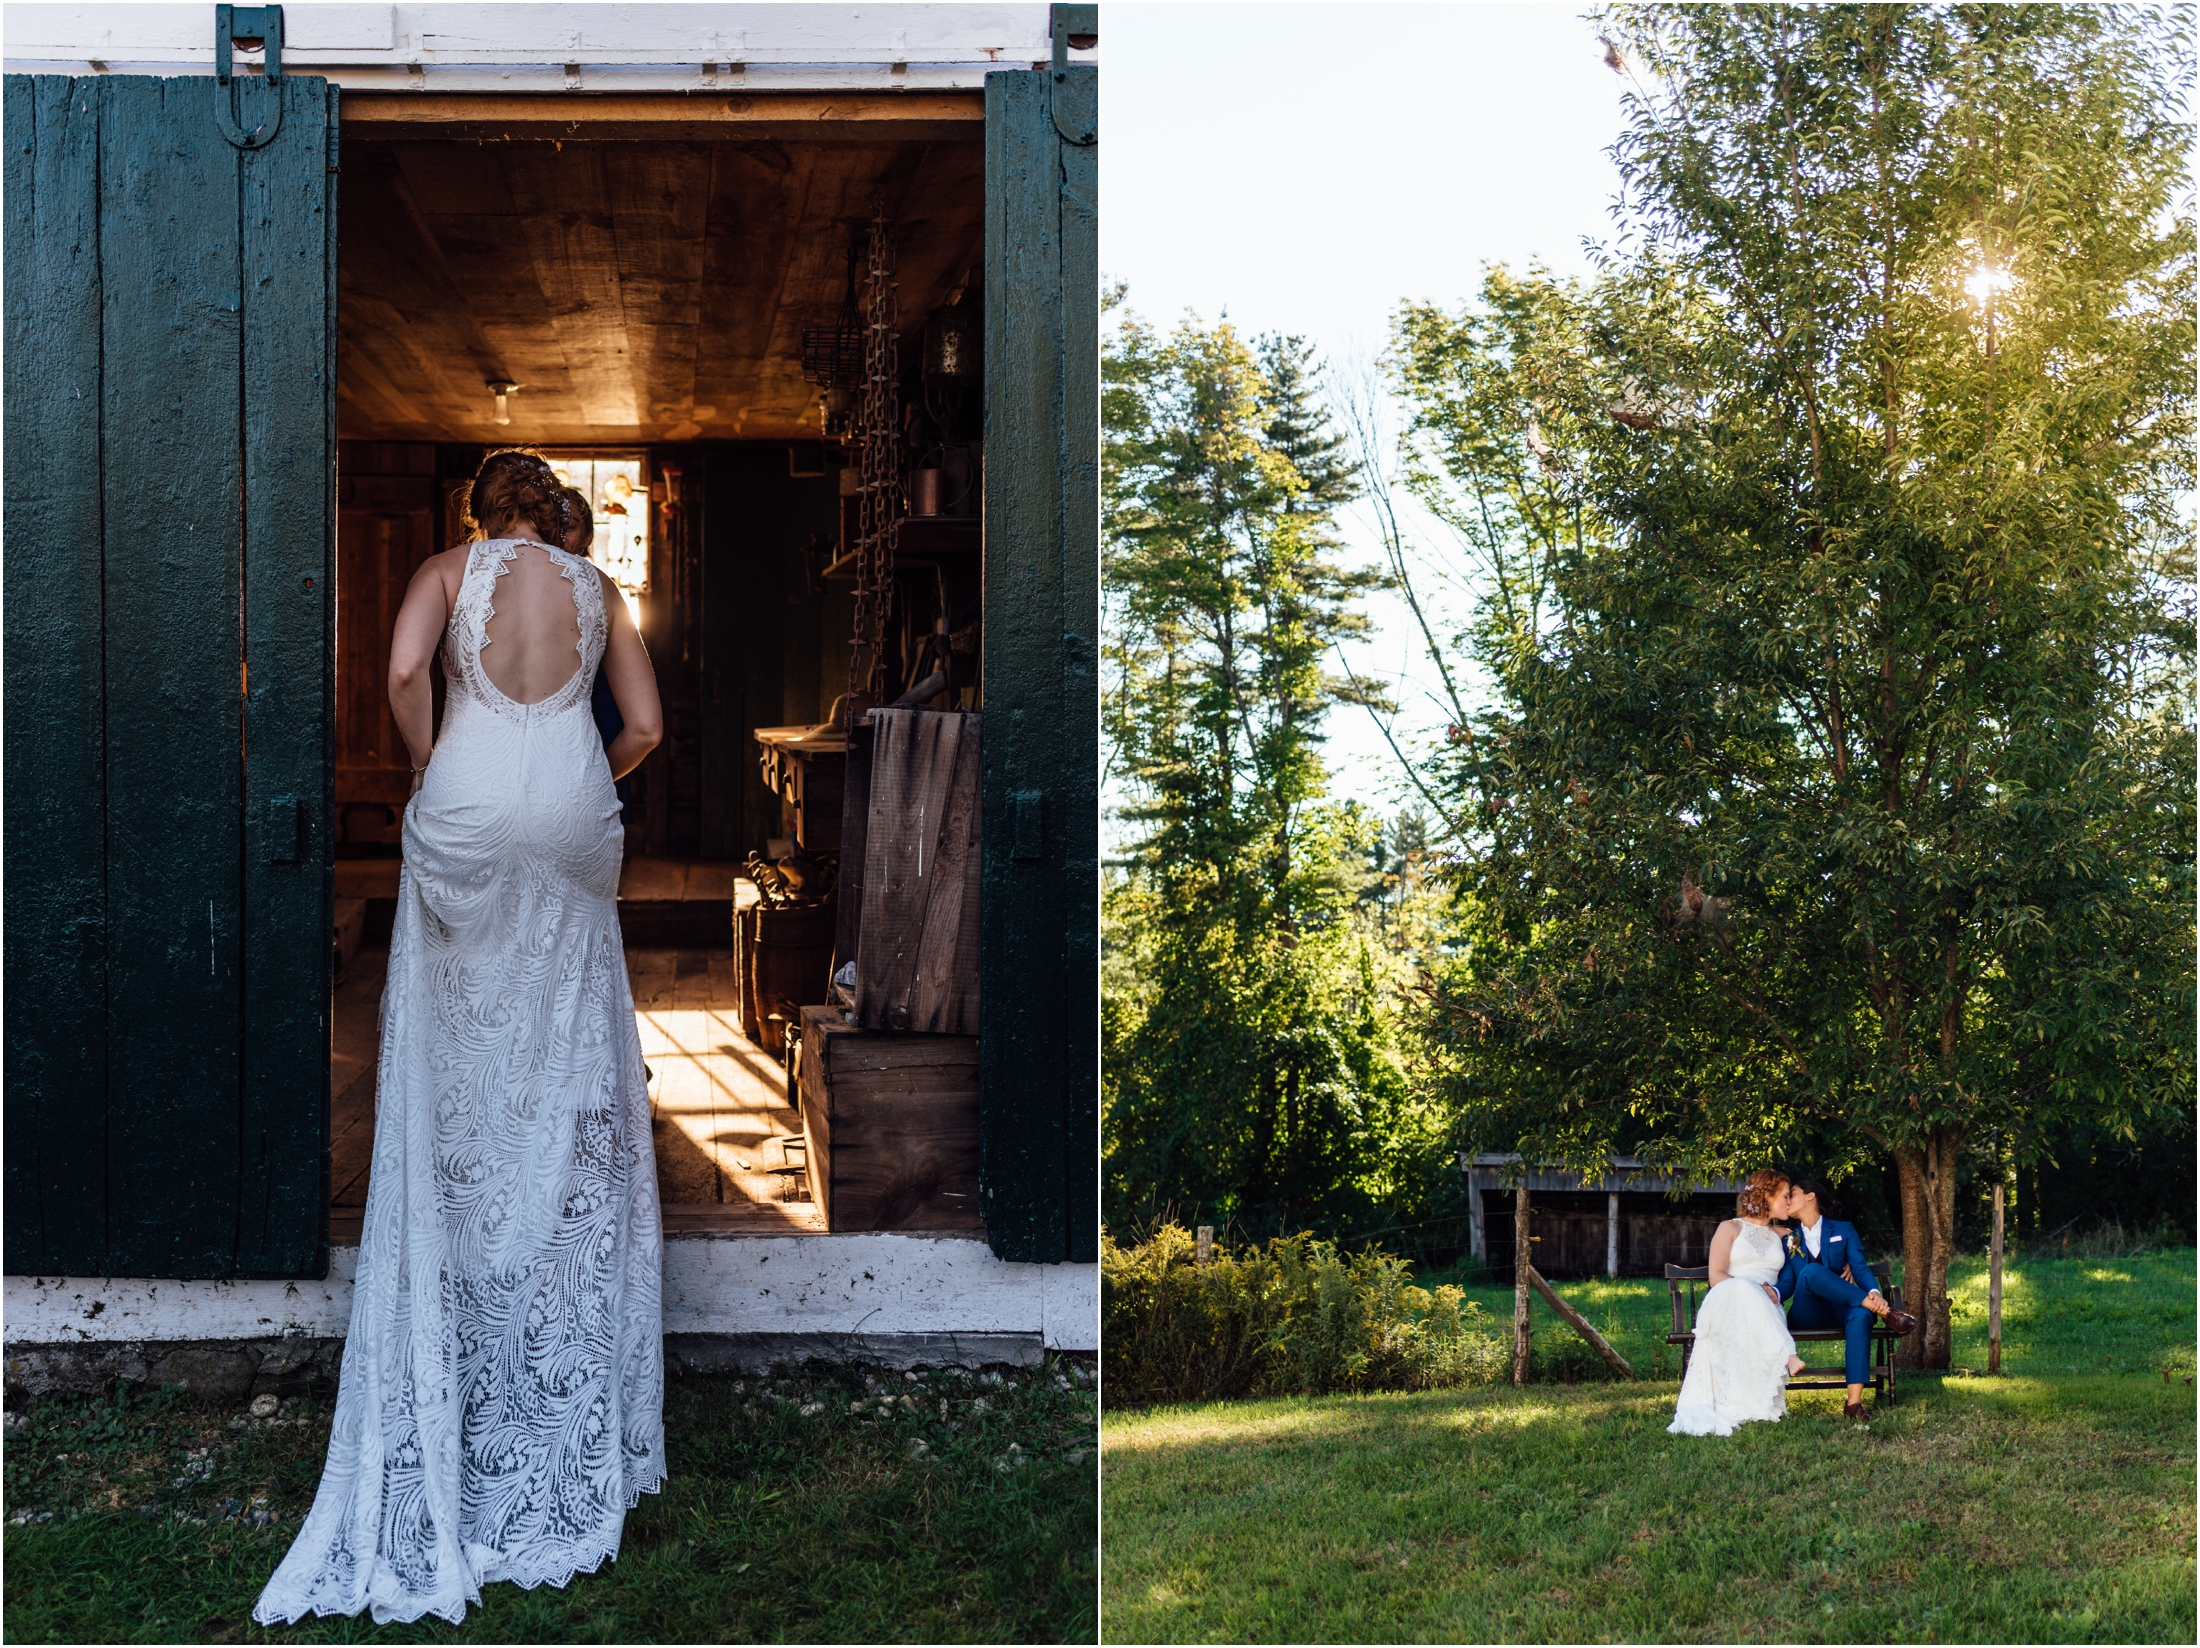 Kate_and_Michele_New_Hampshire_wedding_the_photo_farm_0616.jpg